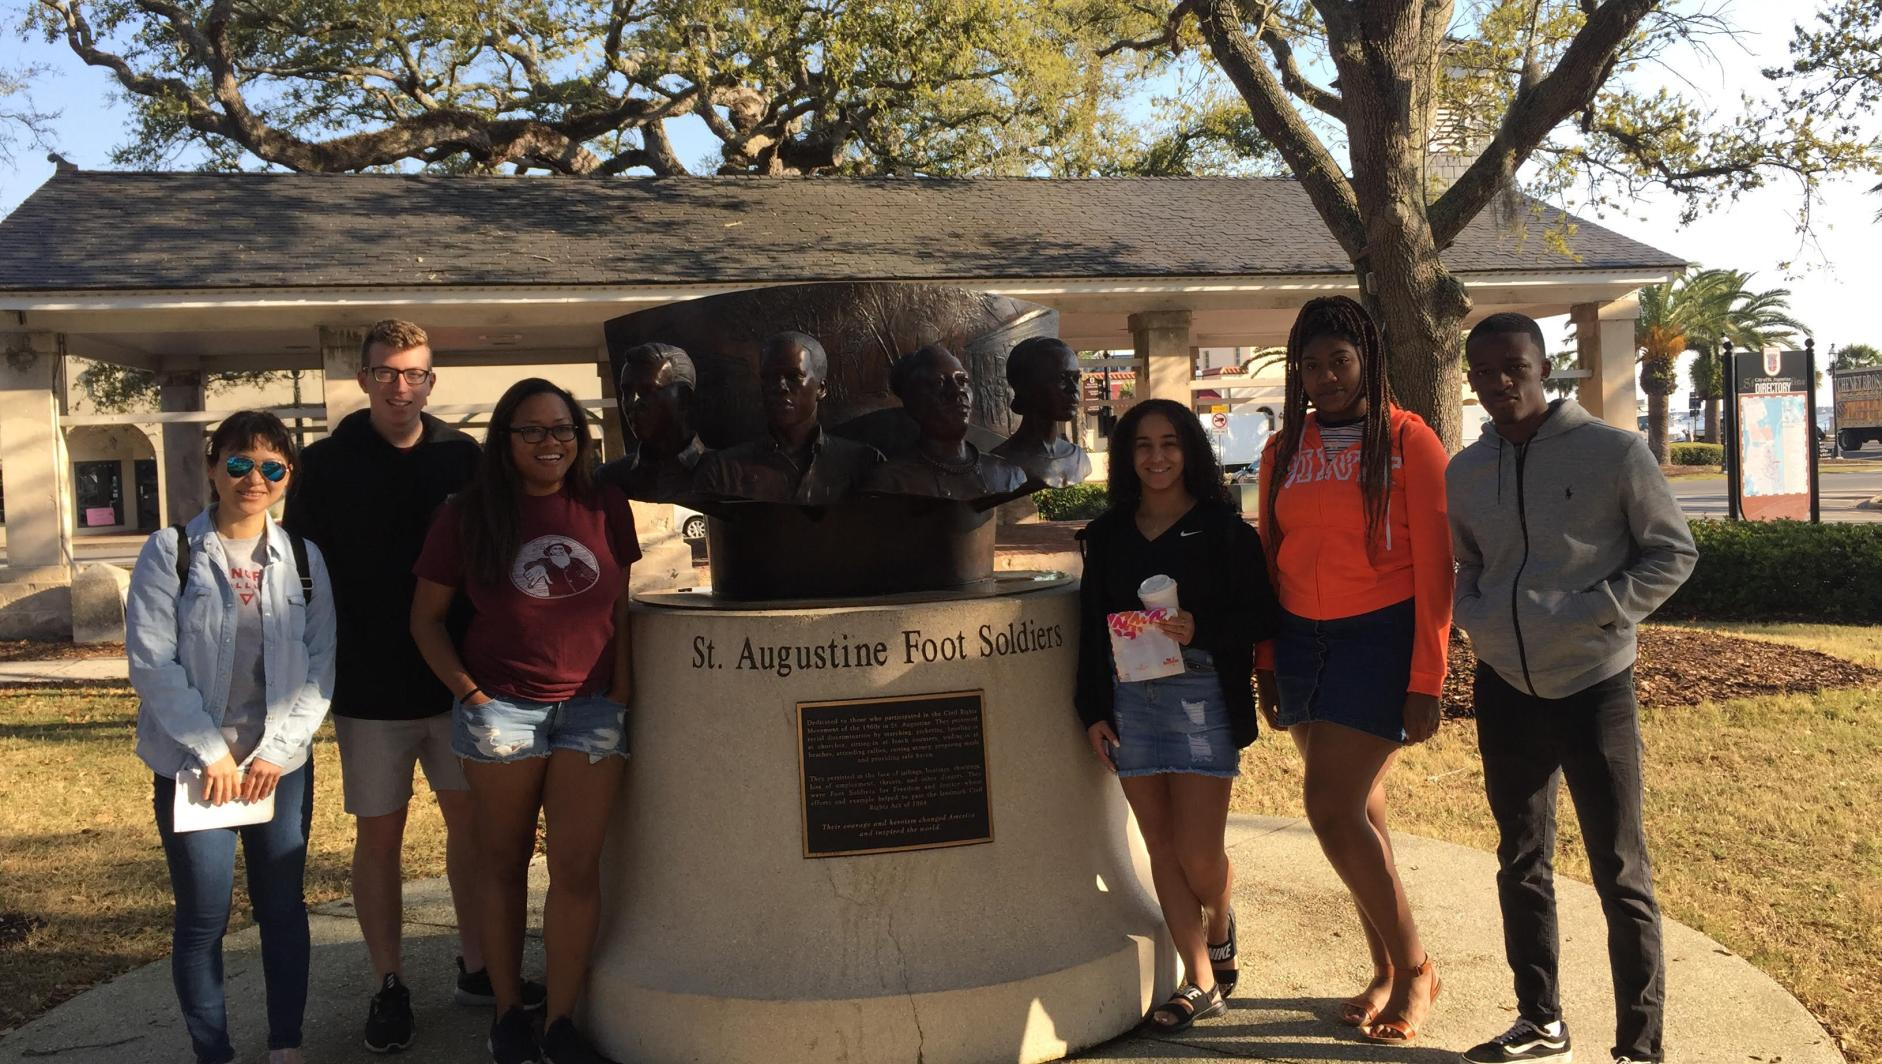 Students posed in front of the Foot Soldiers monument in St. Augustine.